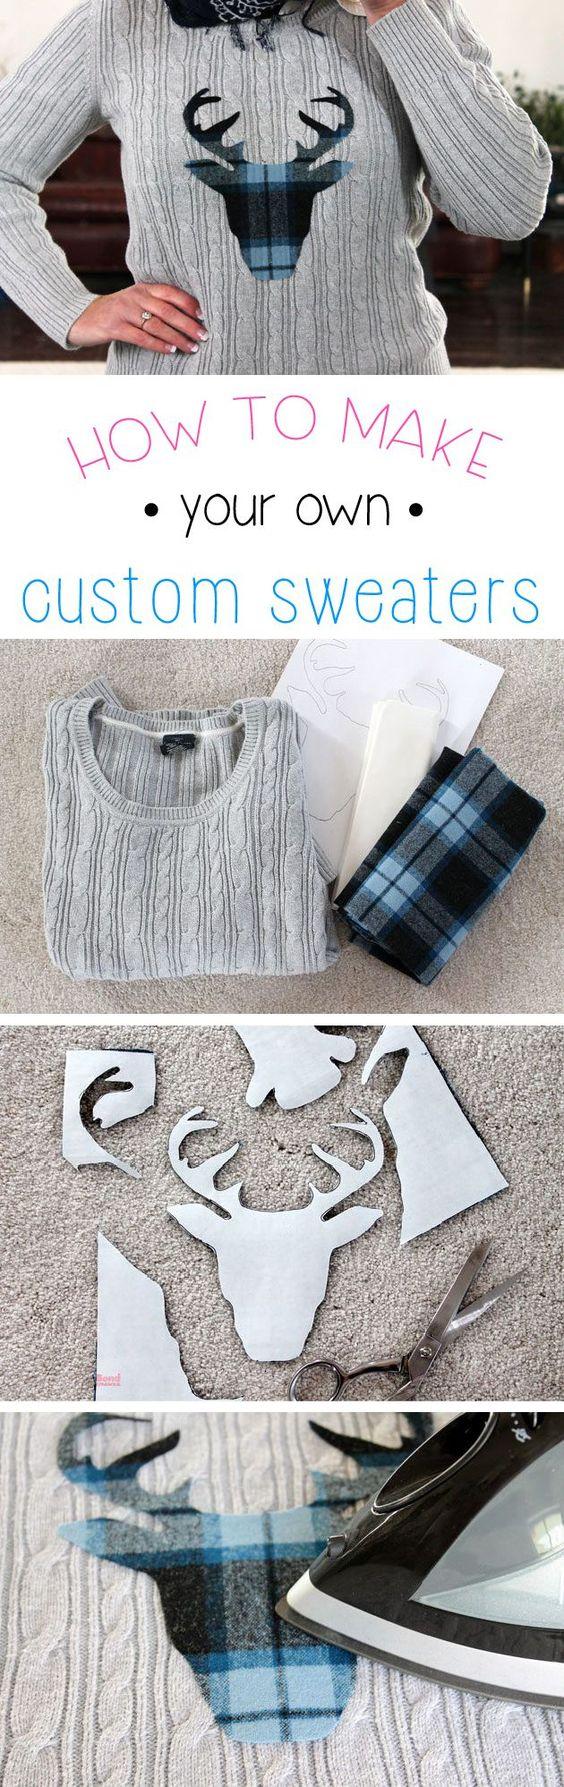 Cutest idea ever! Make custom sweaters by adding your own fun silhouette, using any pattern or shape you like. No sewing required. www.ehow.com/...